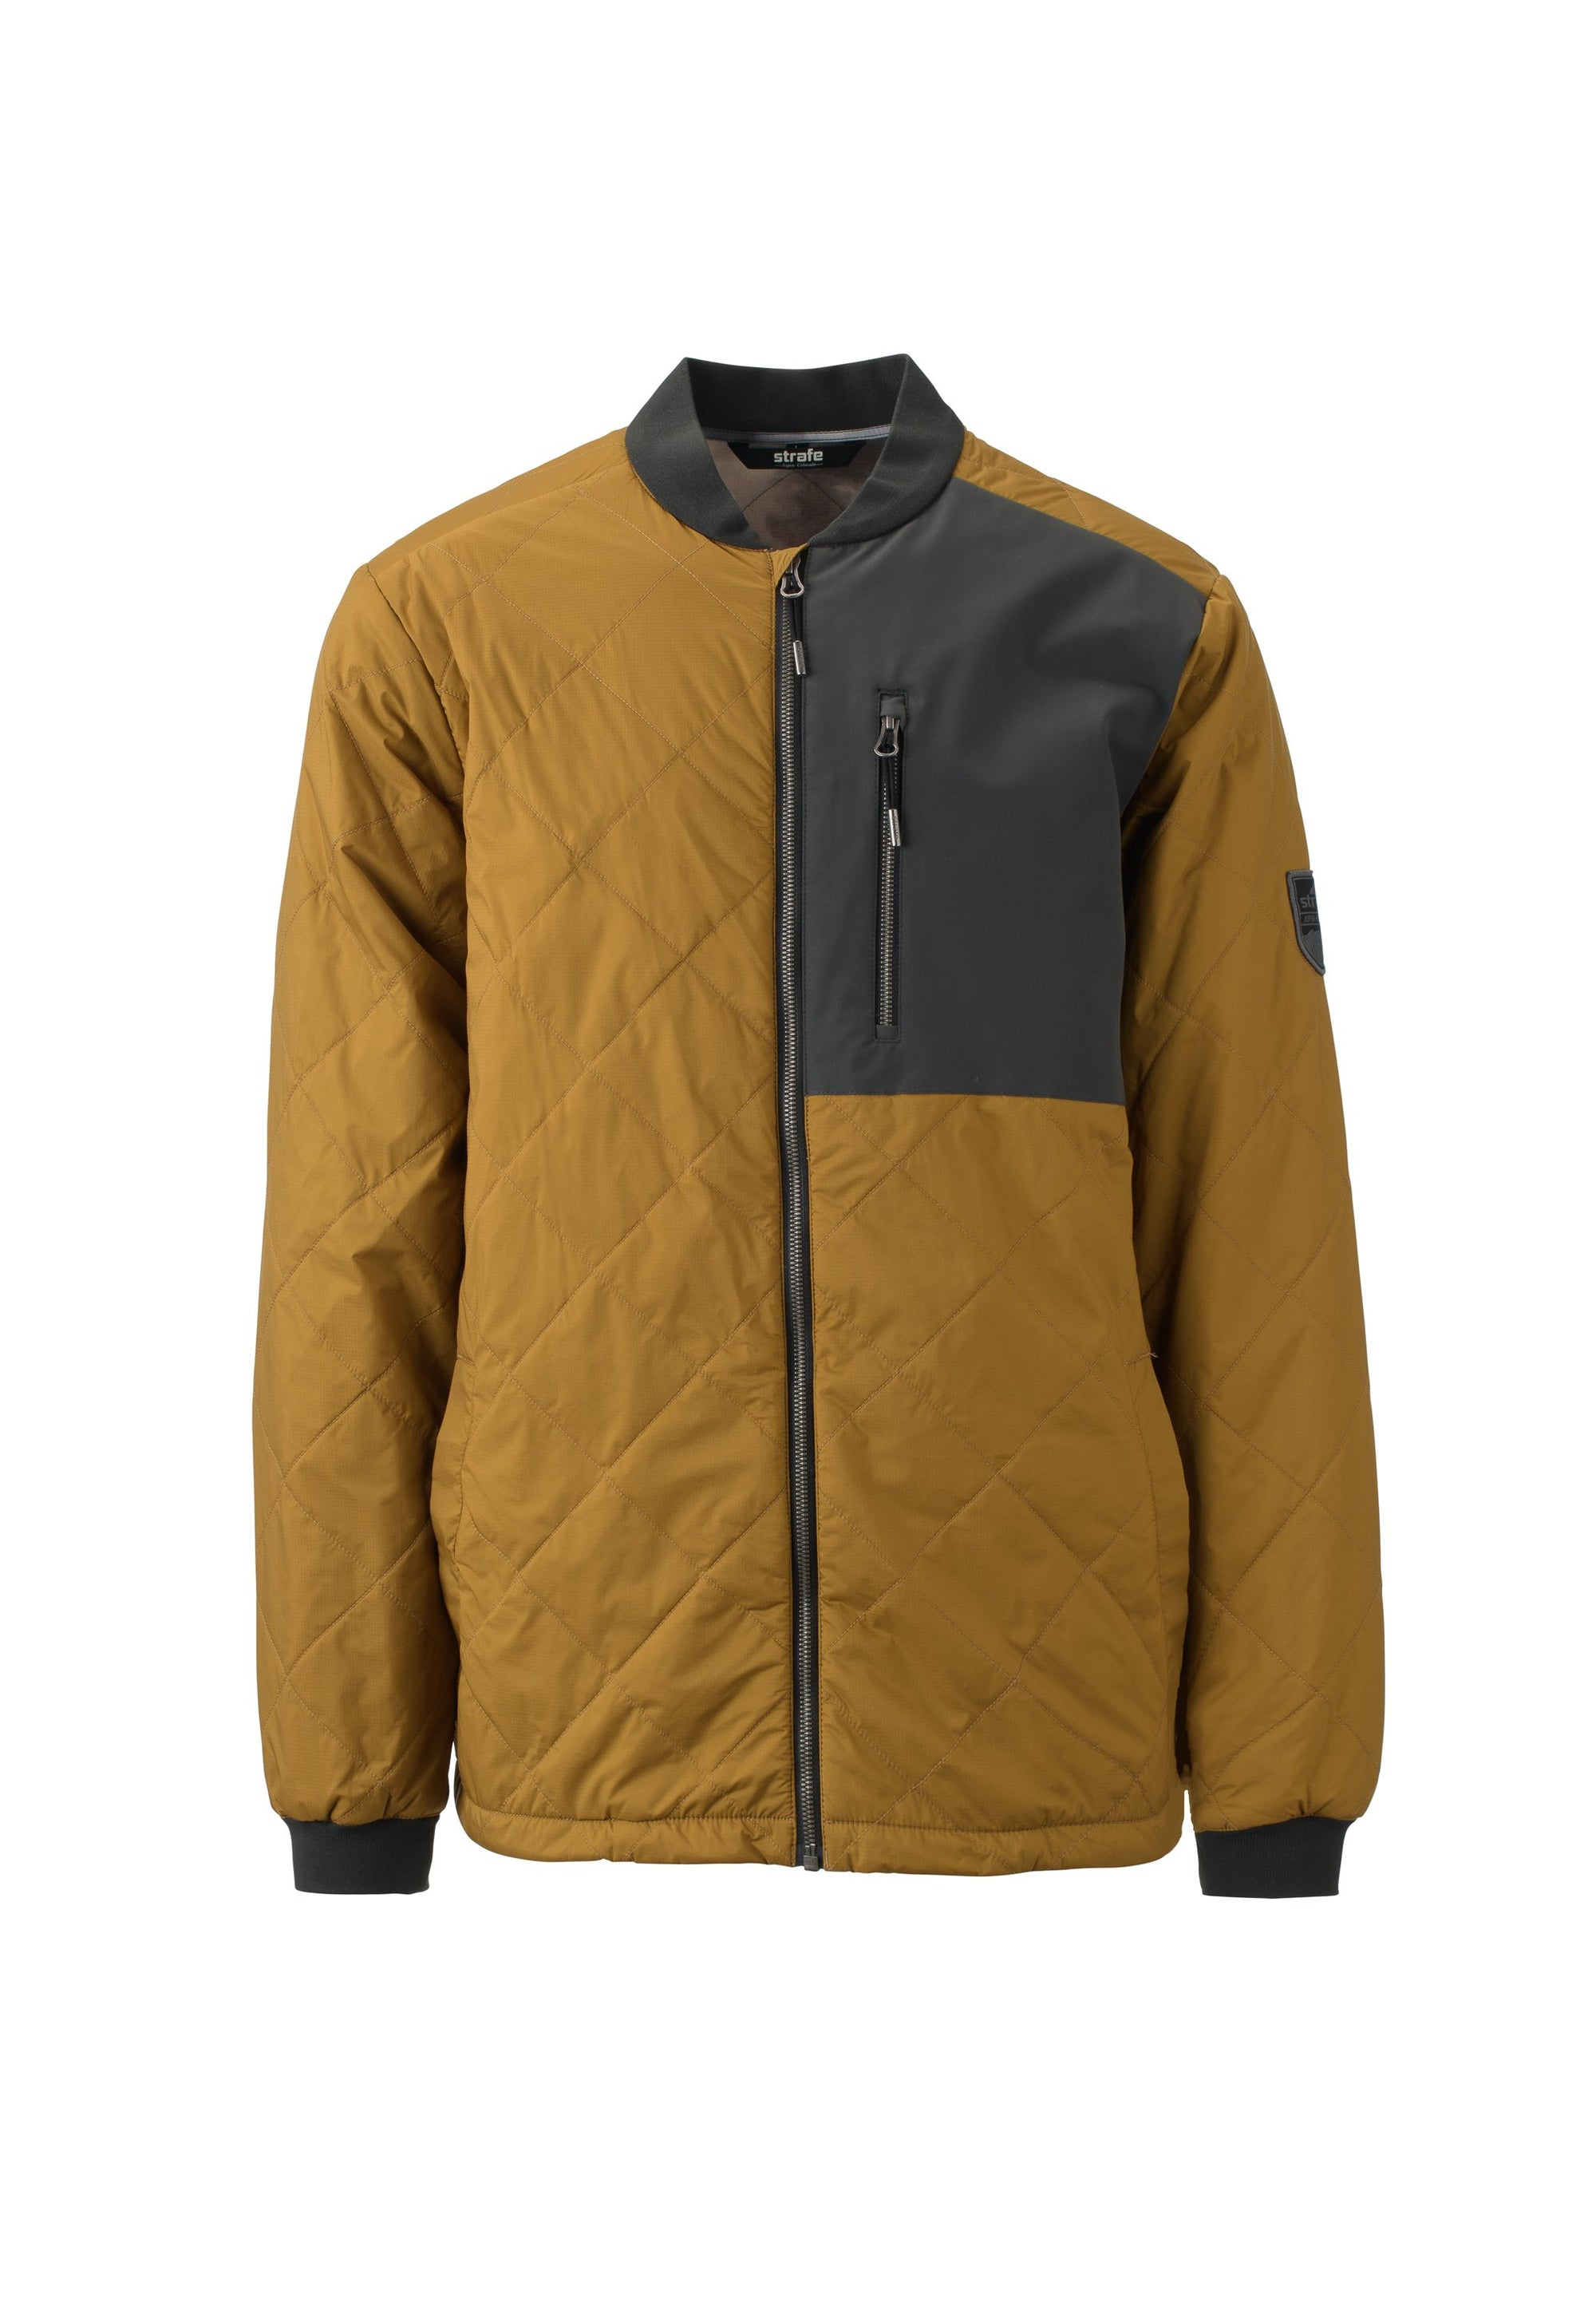 new vintage 2019 men's drifter bomber jacket mid layer from strafe outerwear for skiing and snowboarding